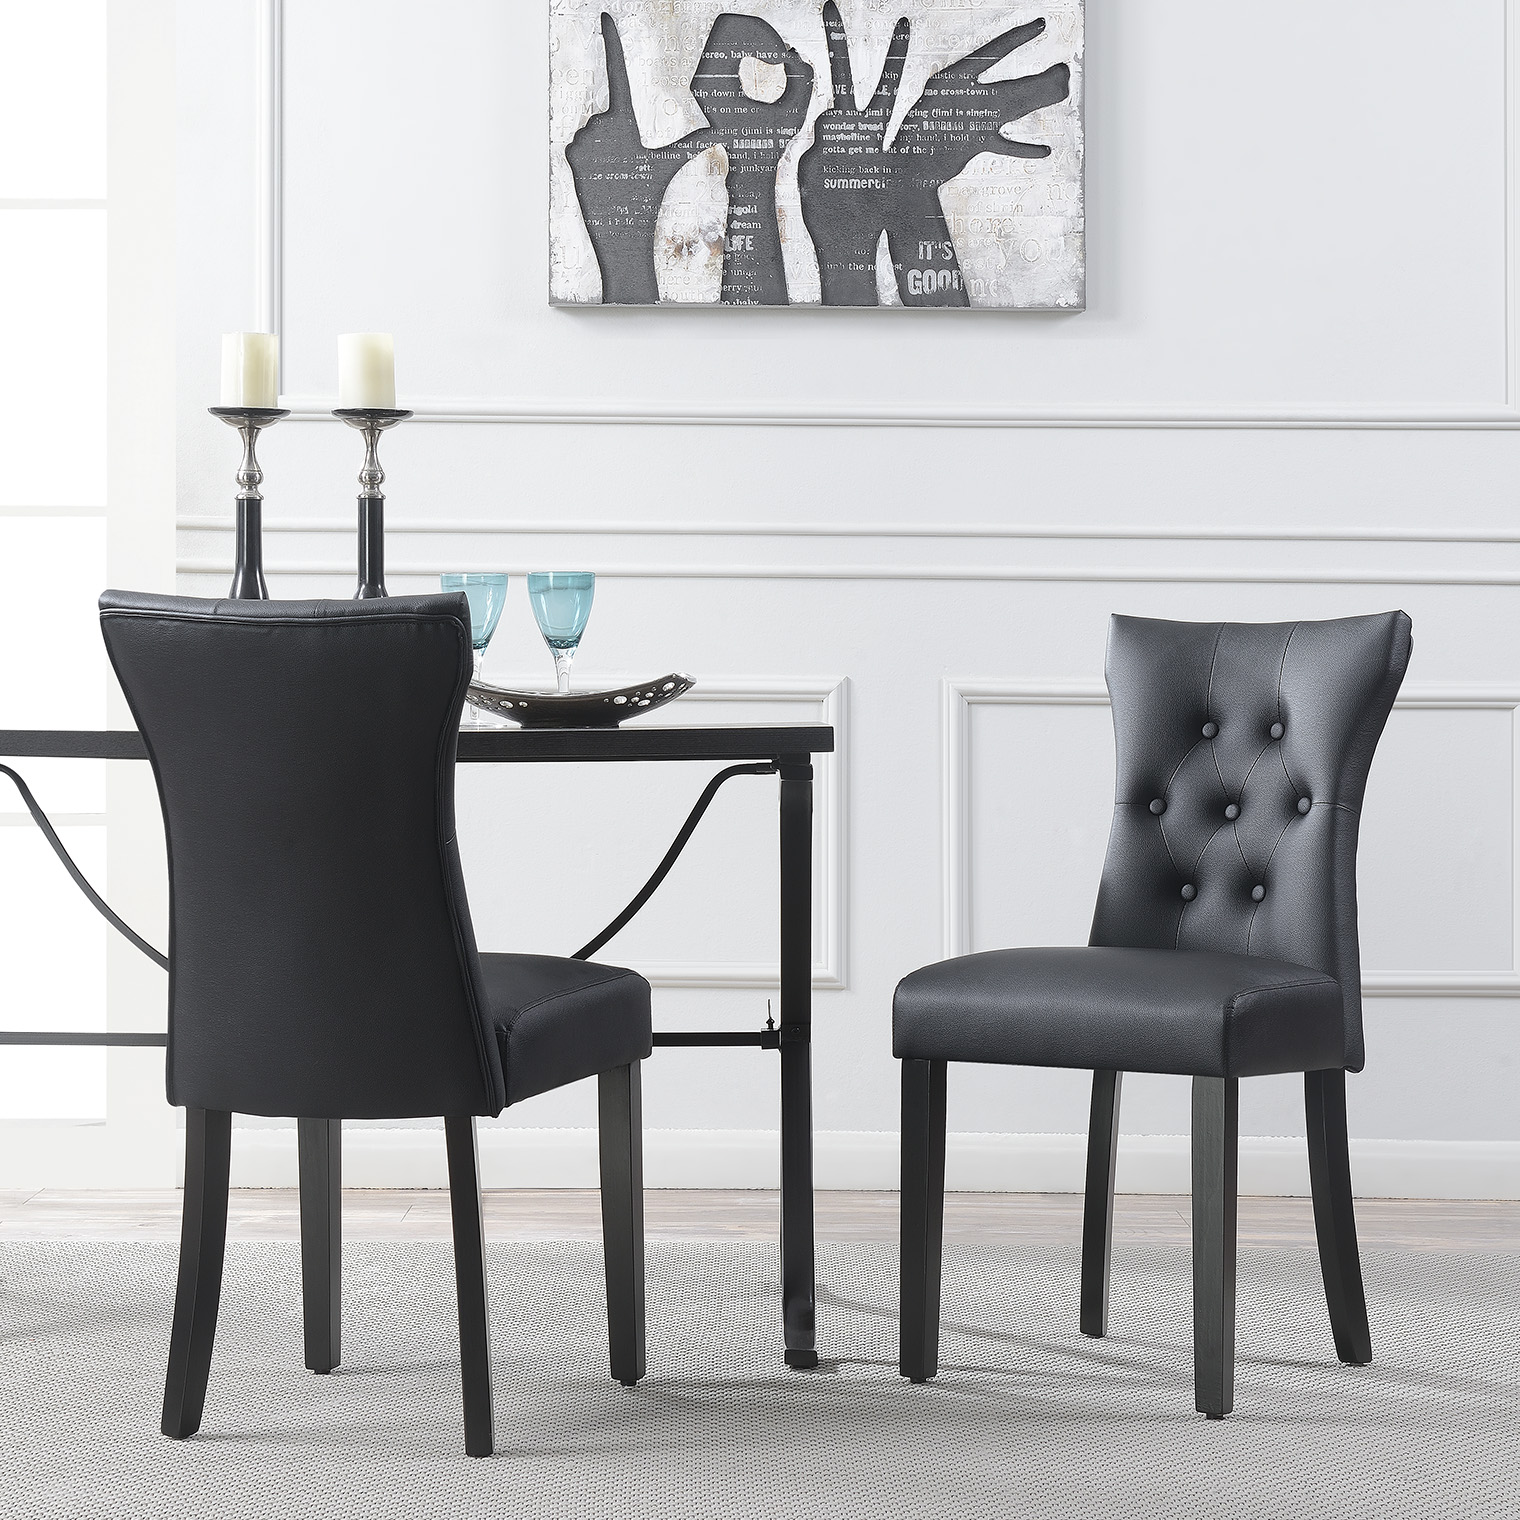 Amazing Details About Set Of 2 Modern Dining Chair Faux Leather Nailhead Upholstered Black White Caraccident5 Cool Chair Designs And Ideas Caraccident5Info